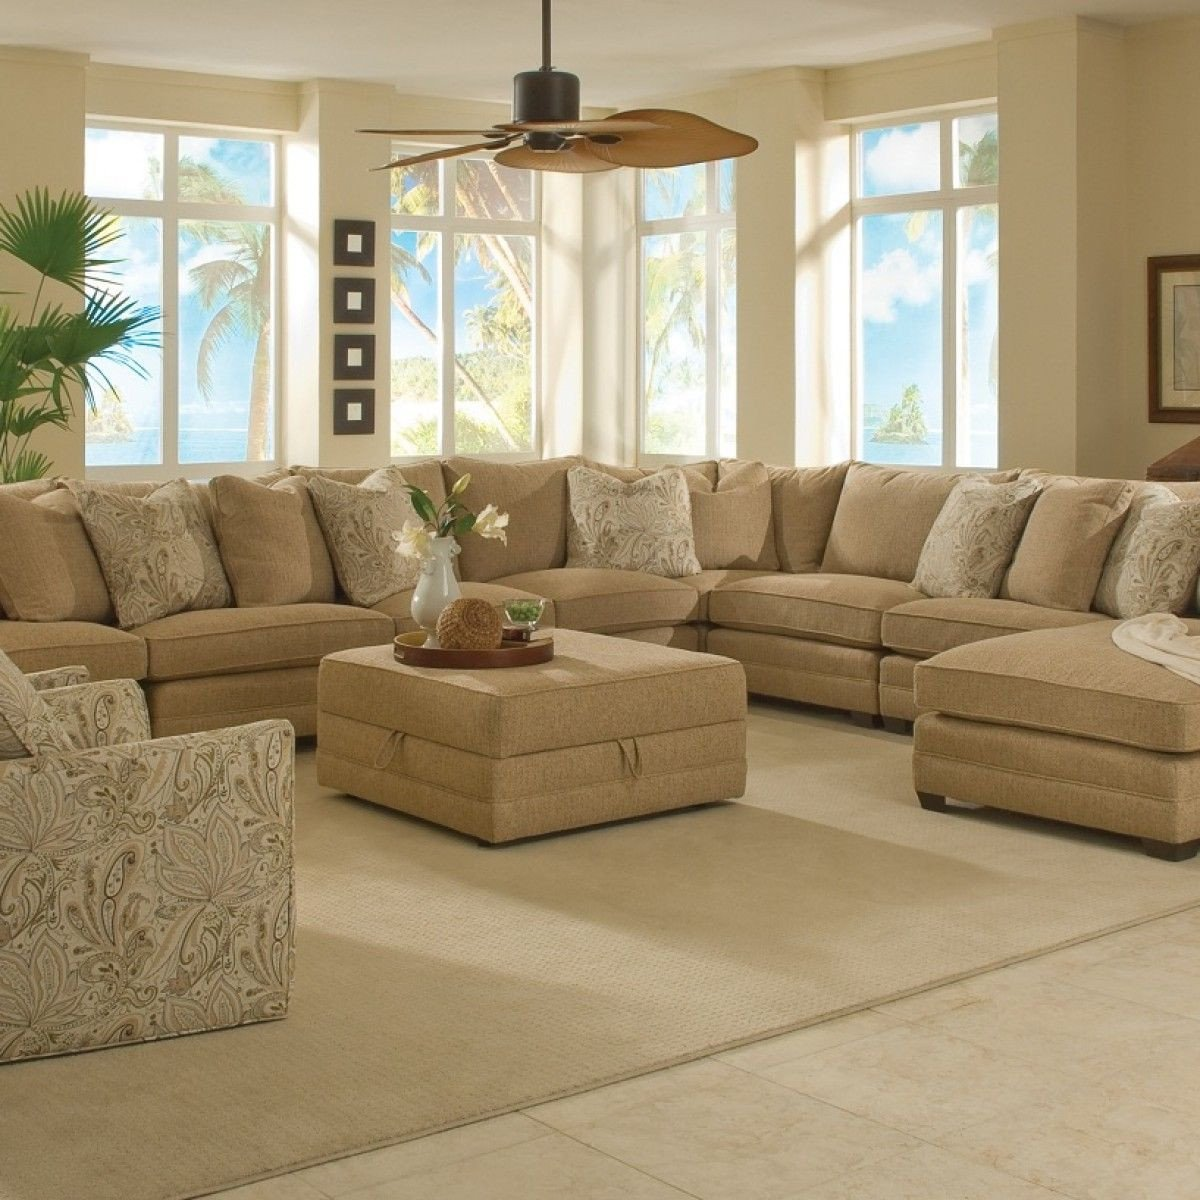 Living Room Decor with Sectional Magnificent Sectional sofas In 2019